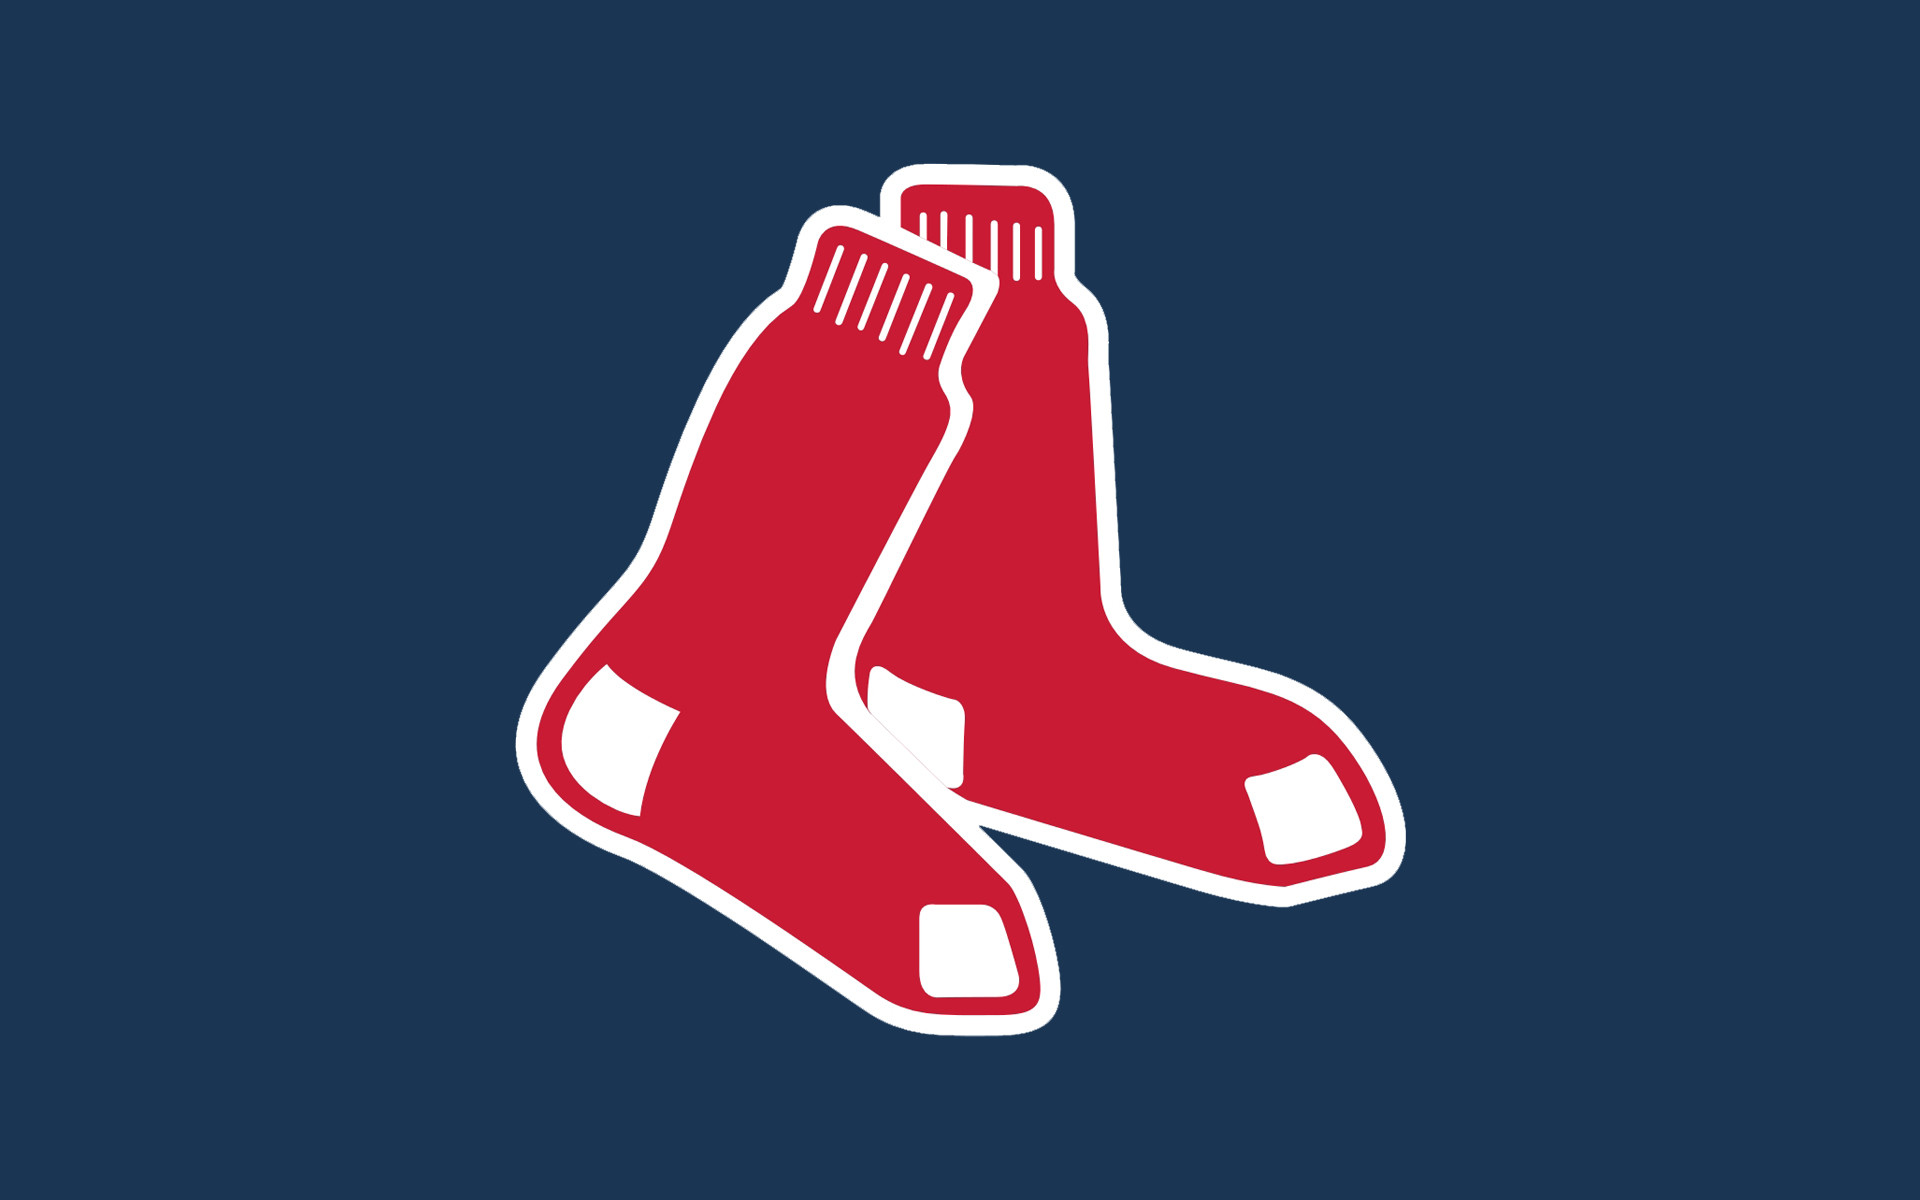 Boston Red Sox wallpapers | Boston Red Sox background